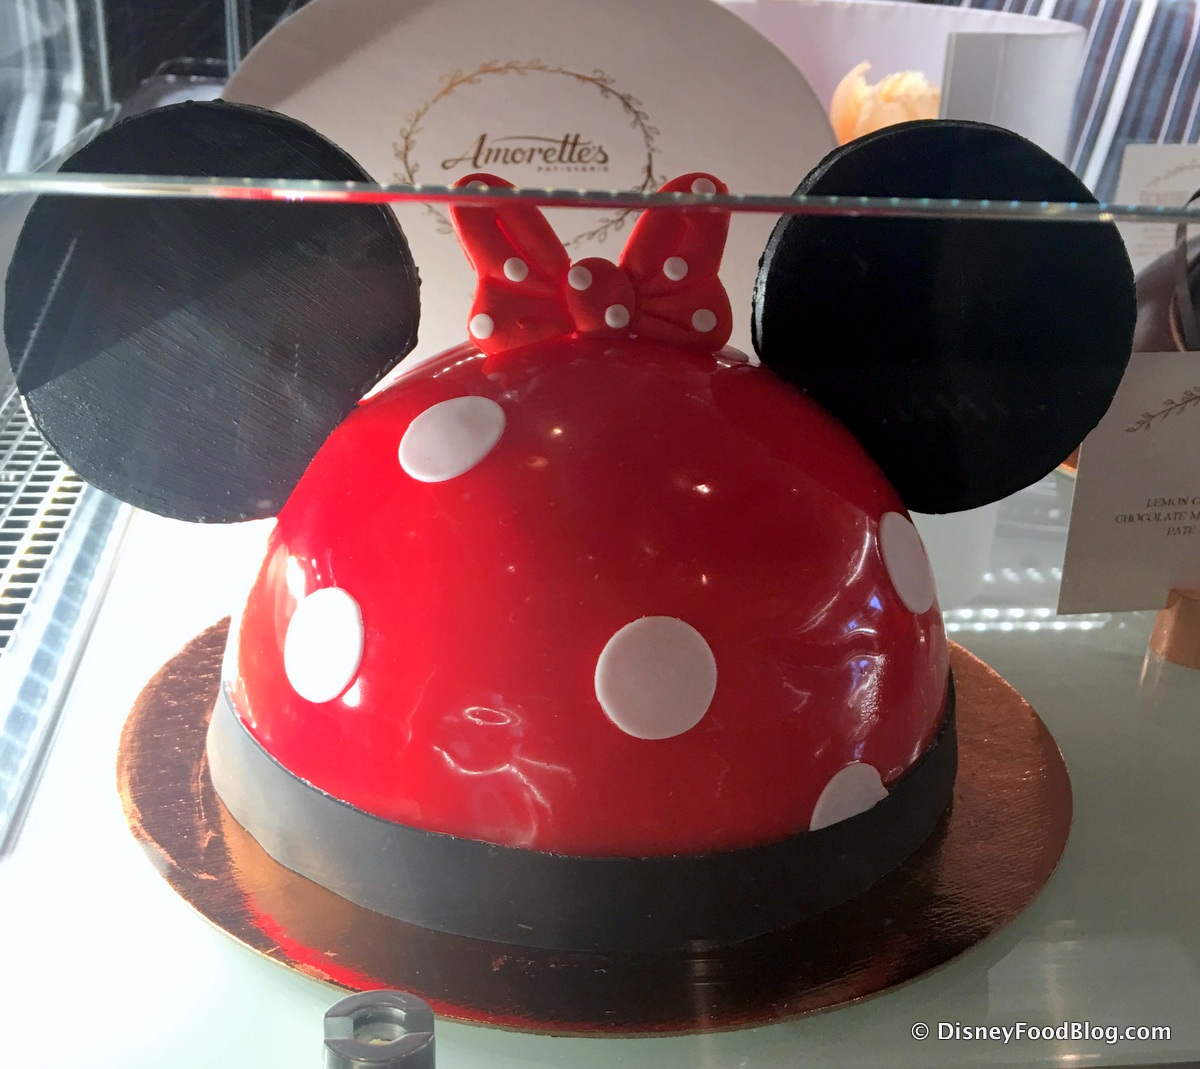 Awesome Orange Decorated Cakes With Chocolate